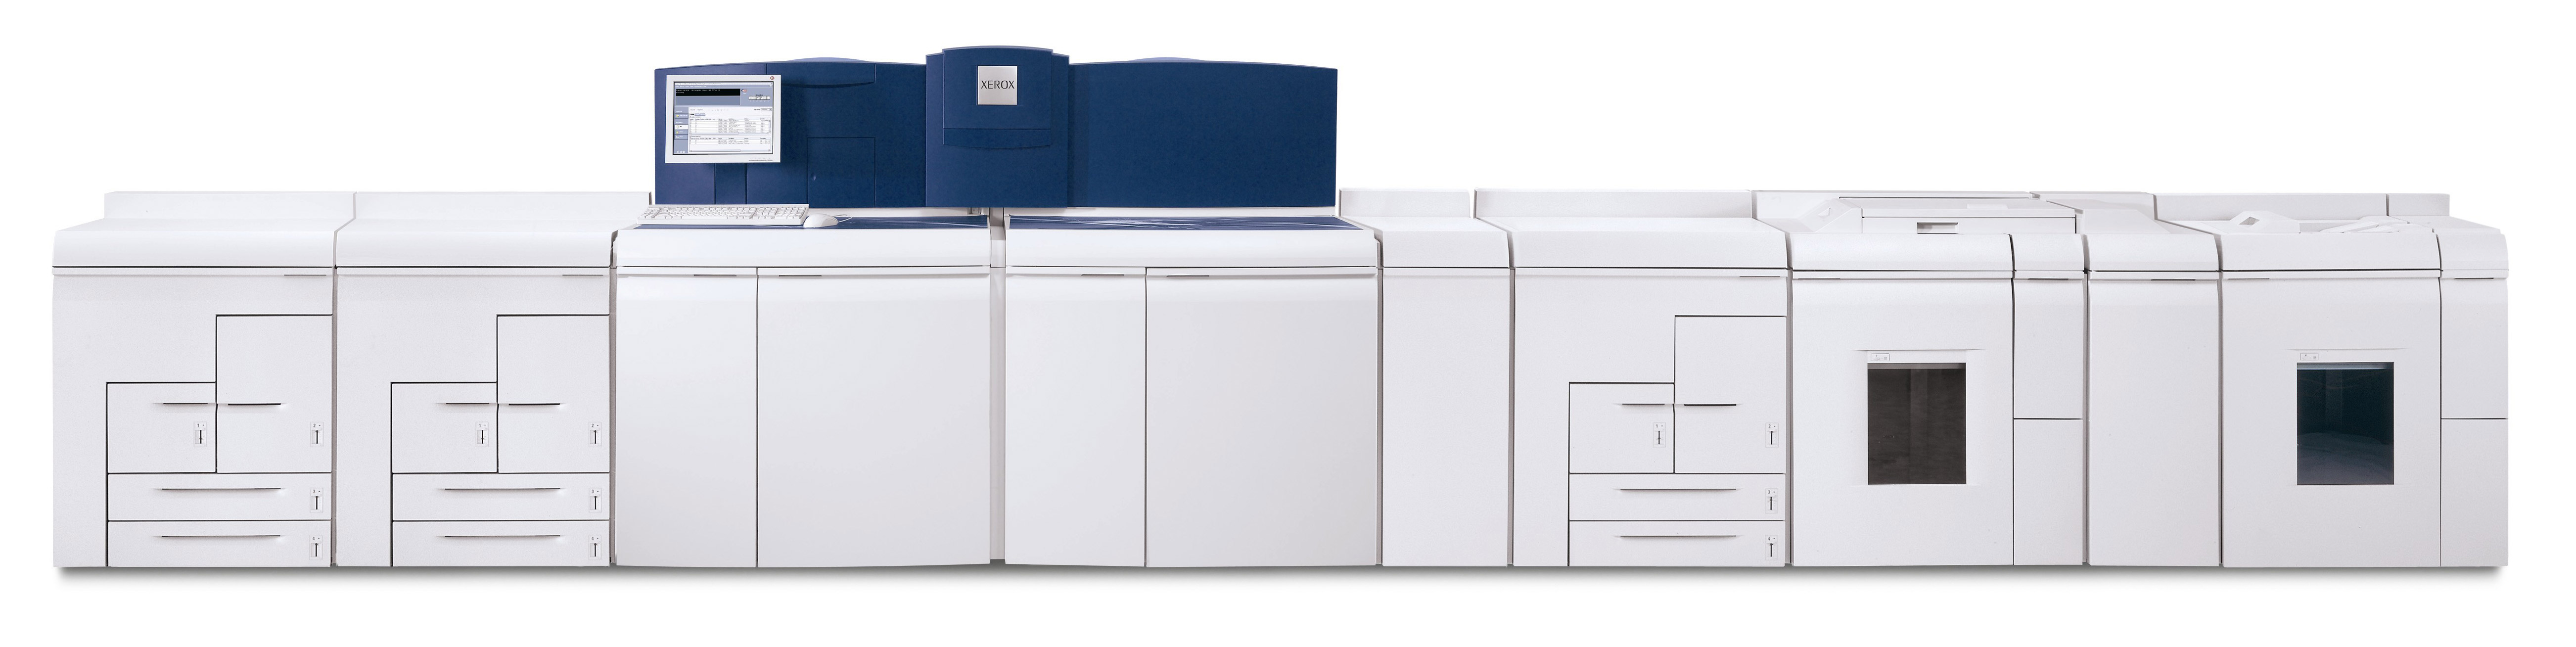 xerox-docutech-digital-printing